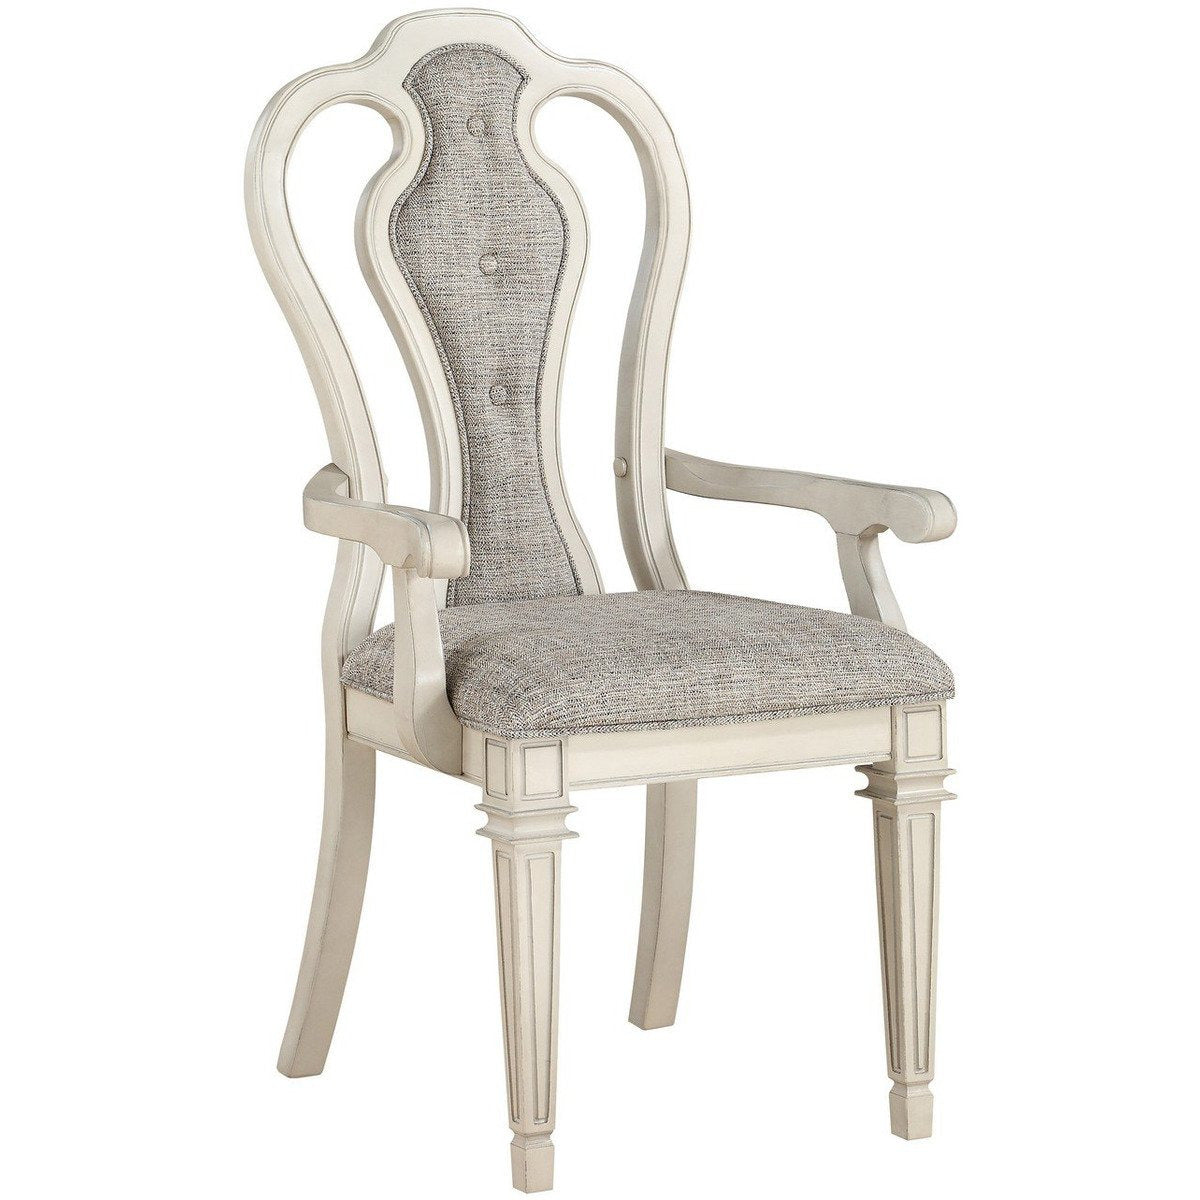 Accent Chairs - Wood And Fabric Dining Side Armchairs With Curved Back, Set Of 2, White And Gray